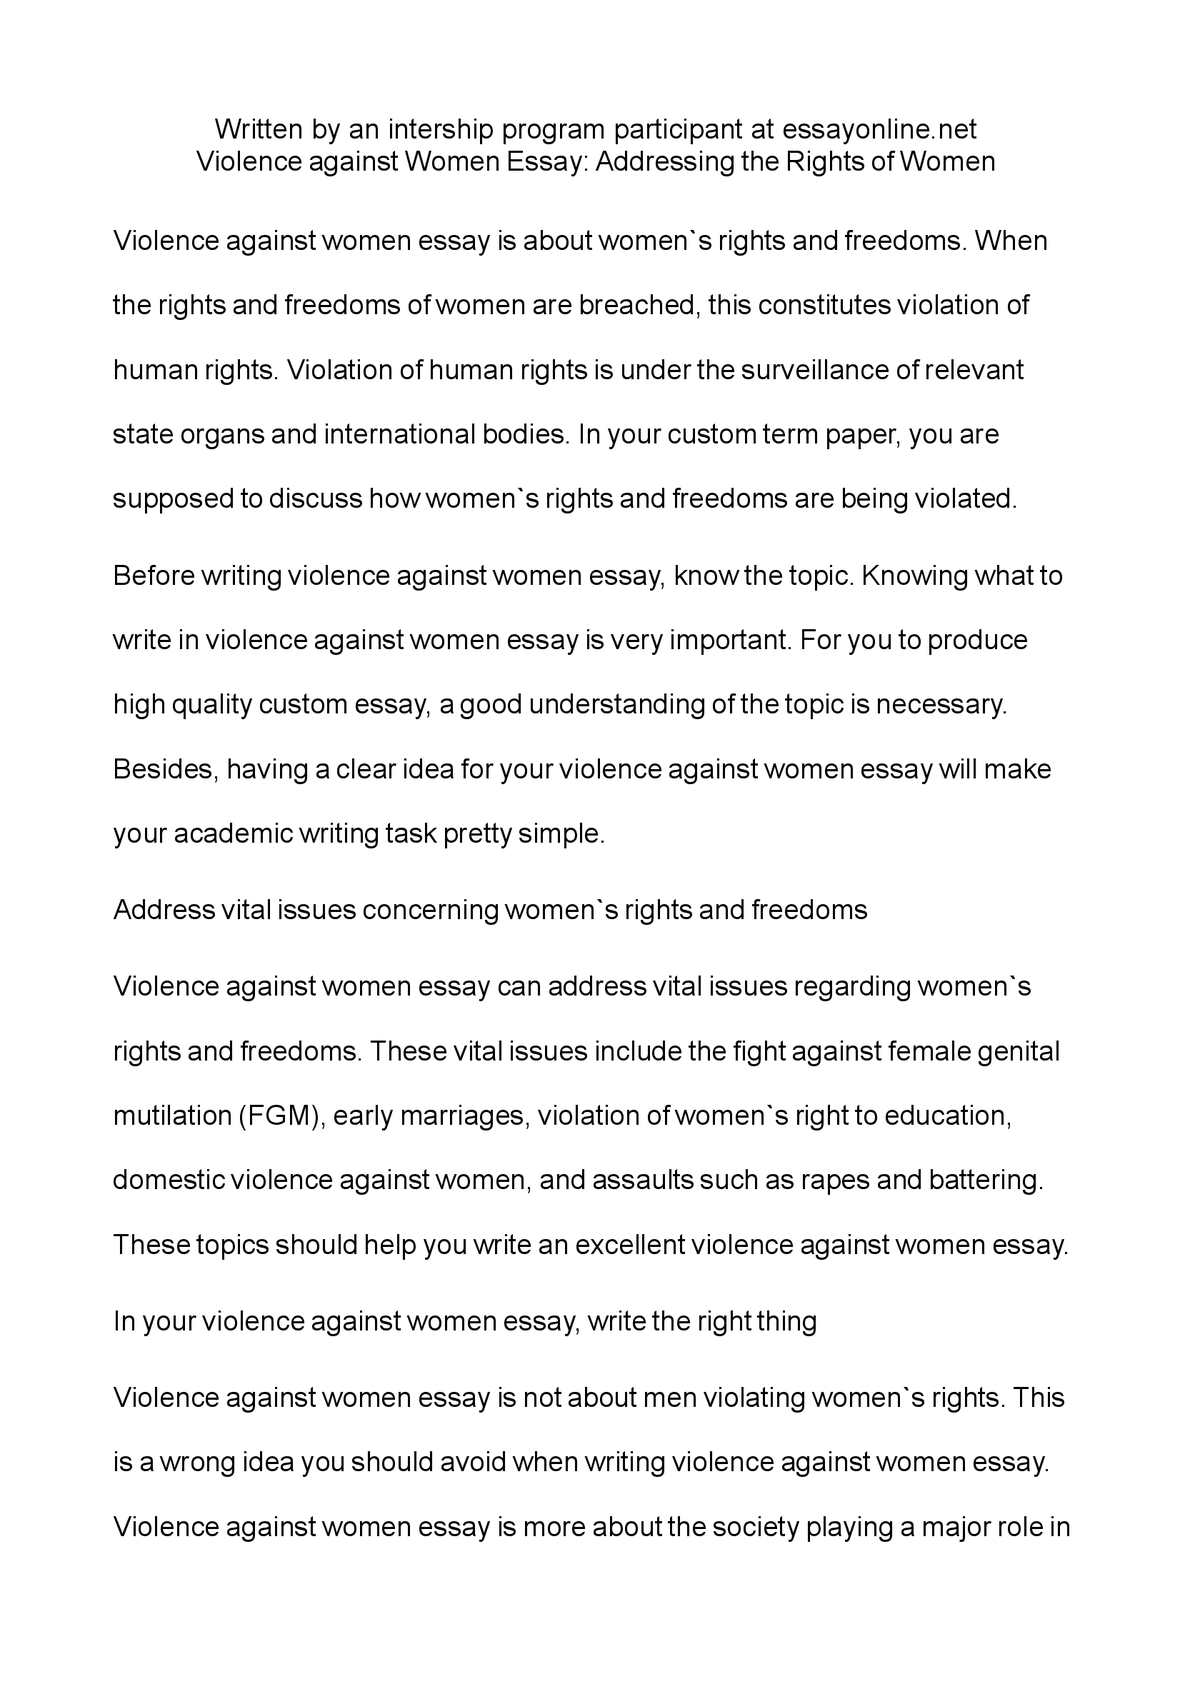 Calam o violence against women essay addressing the rights of women